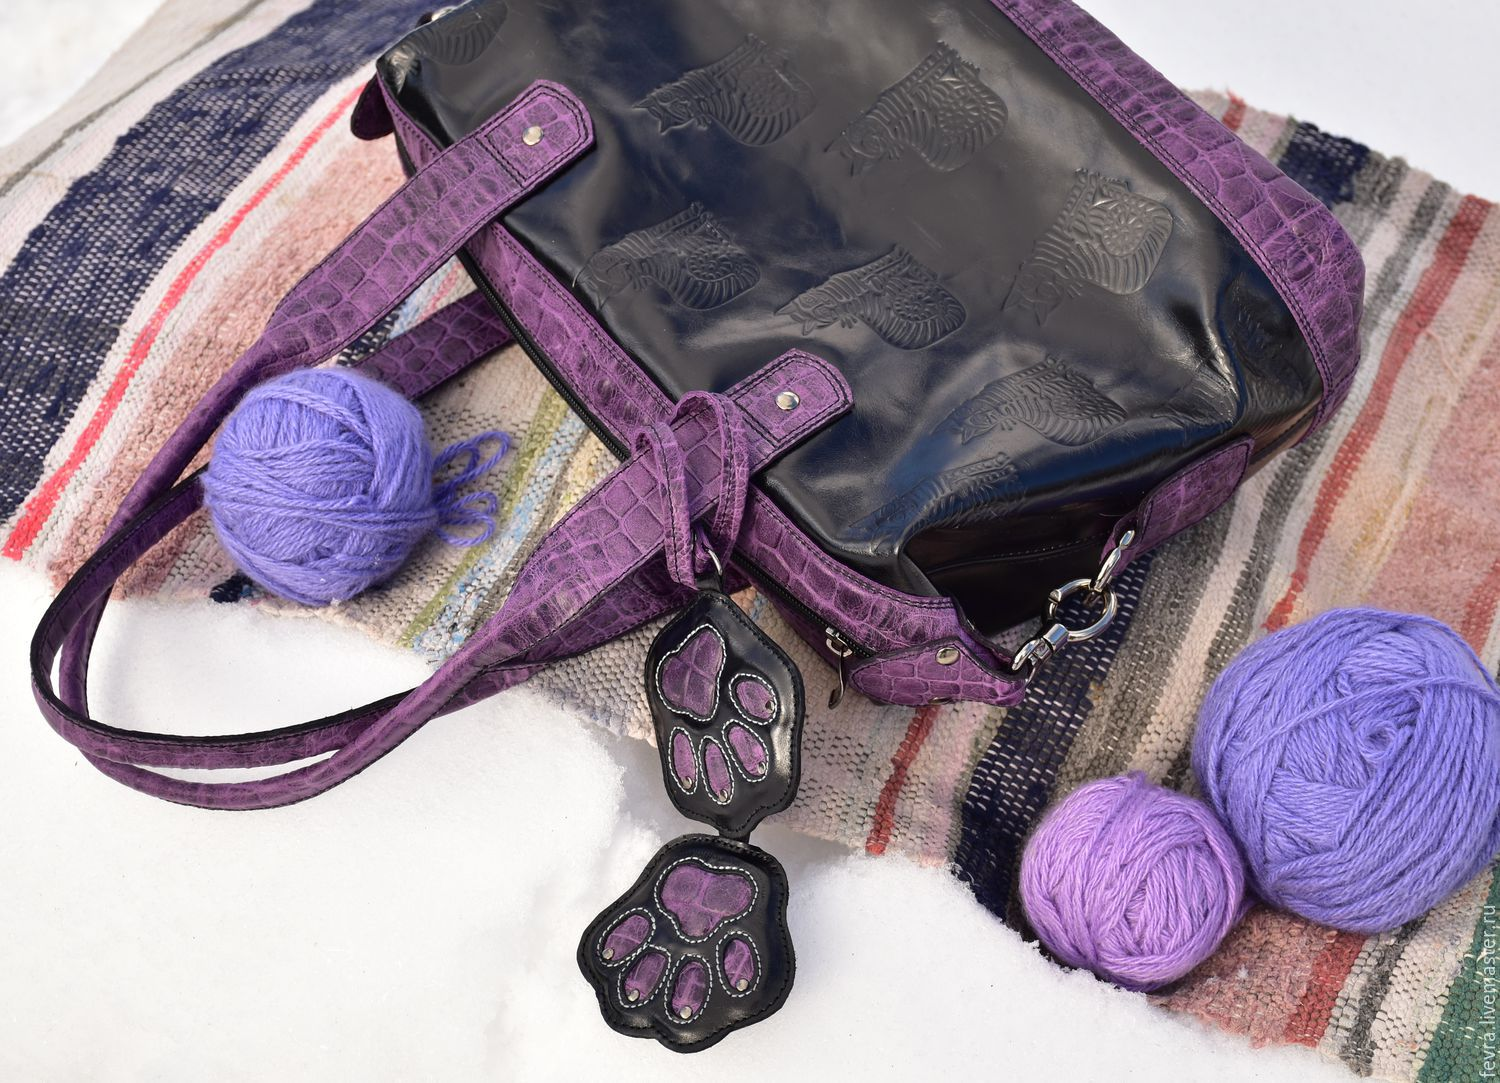 Black bag with purple and lilac trim was very harmonious. Key chains with a cat's paws make it fun and positive.